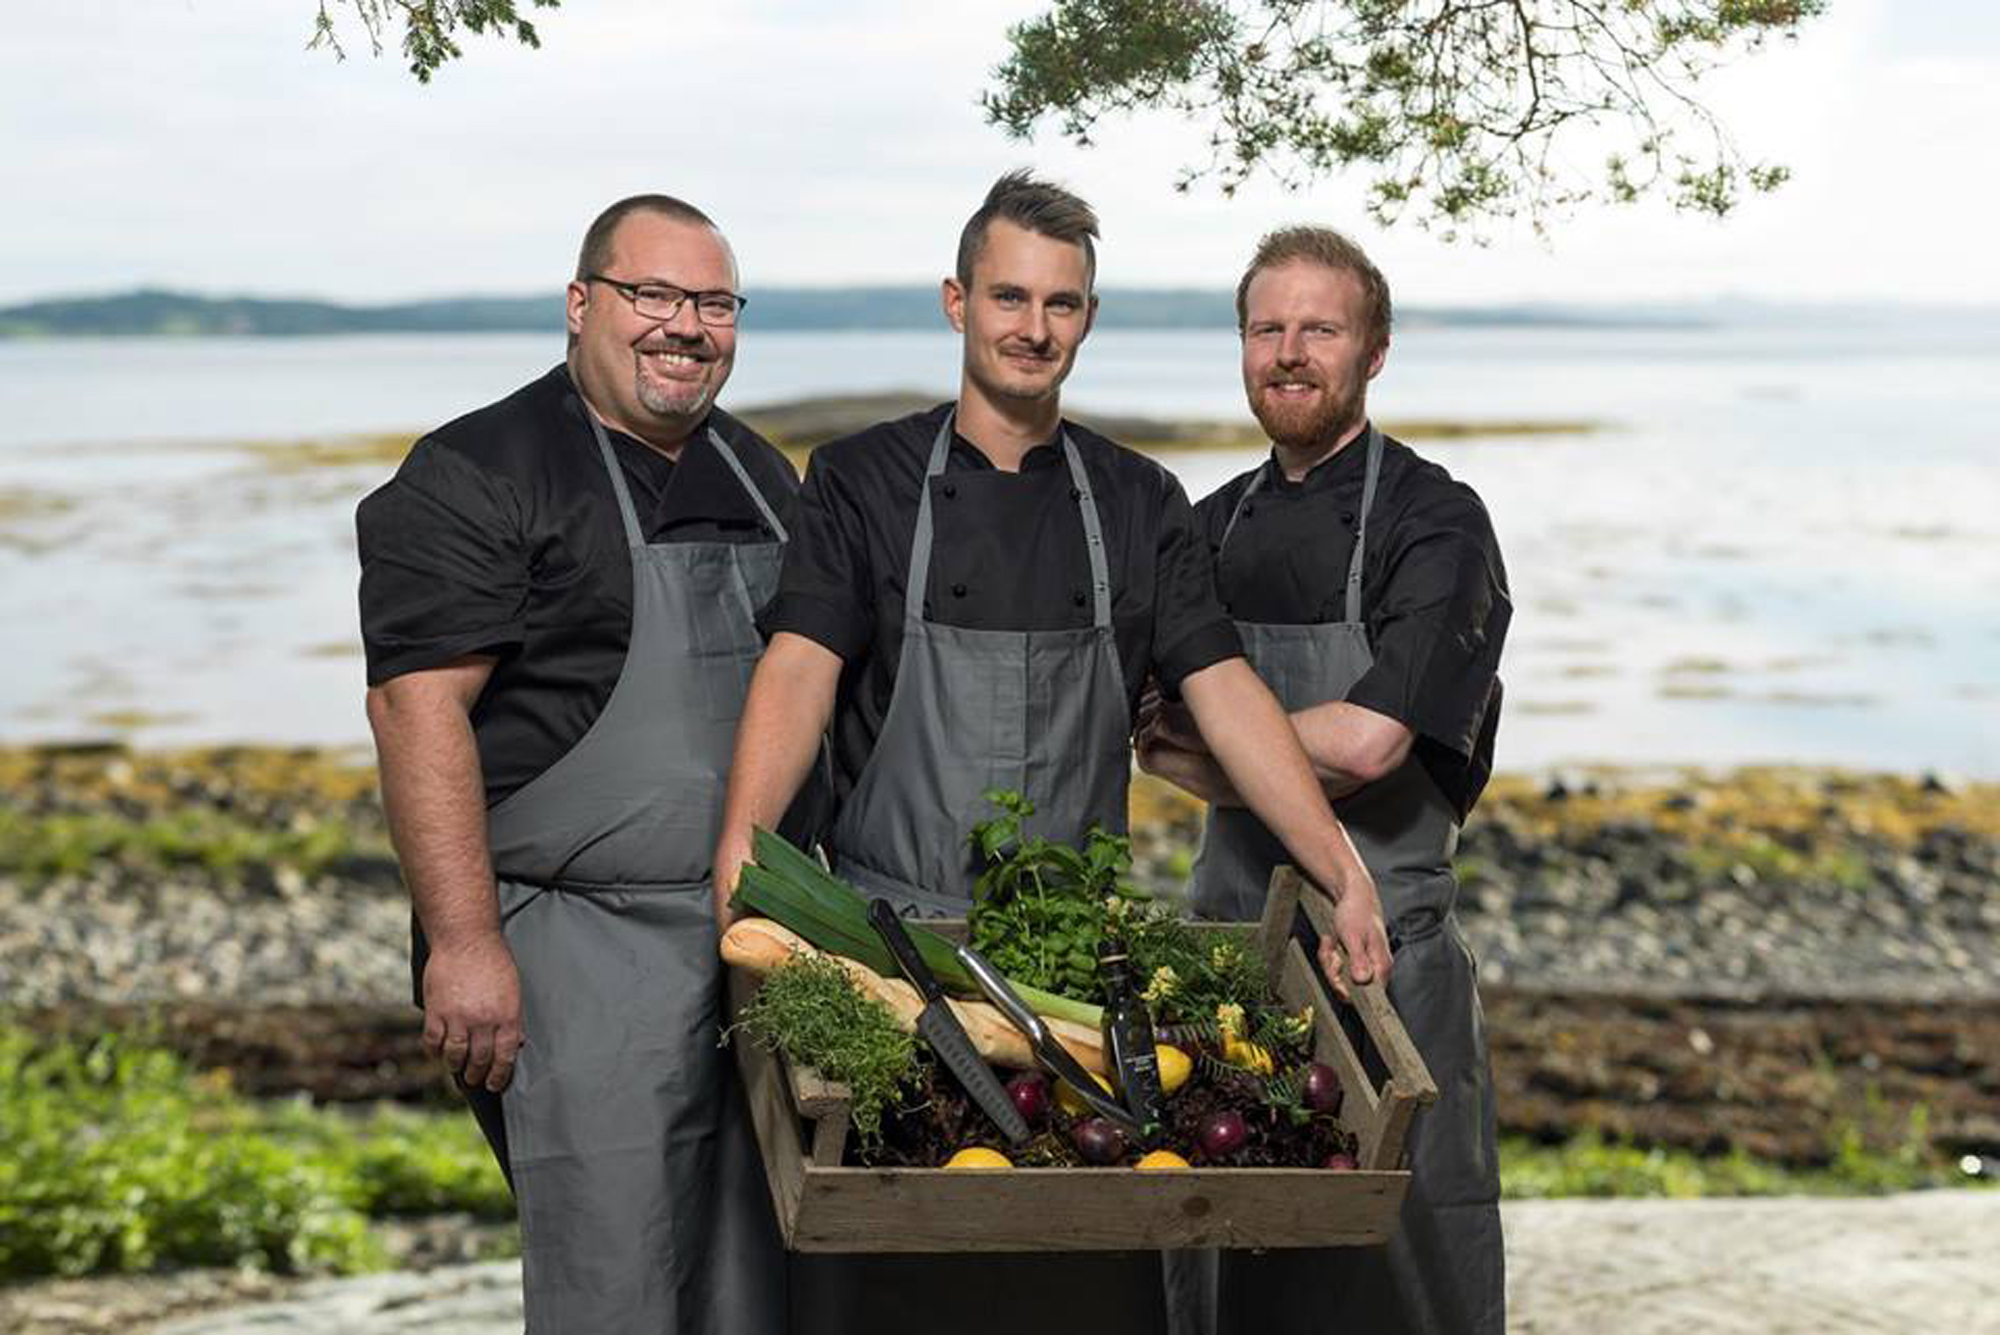 Picture of the 3 lads who have started Chef 4 You  - Food hall, eatery, catering. Copyright: Chef 4 You